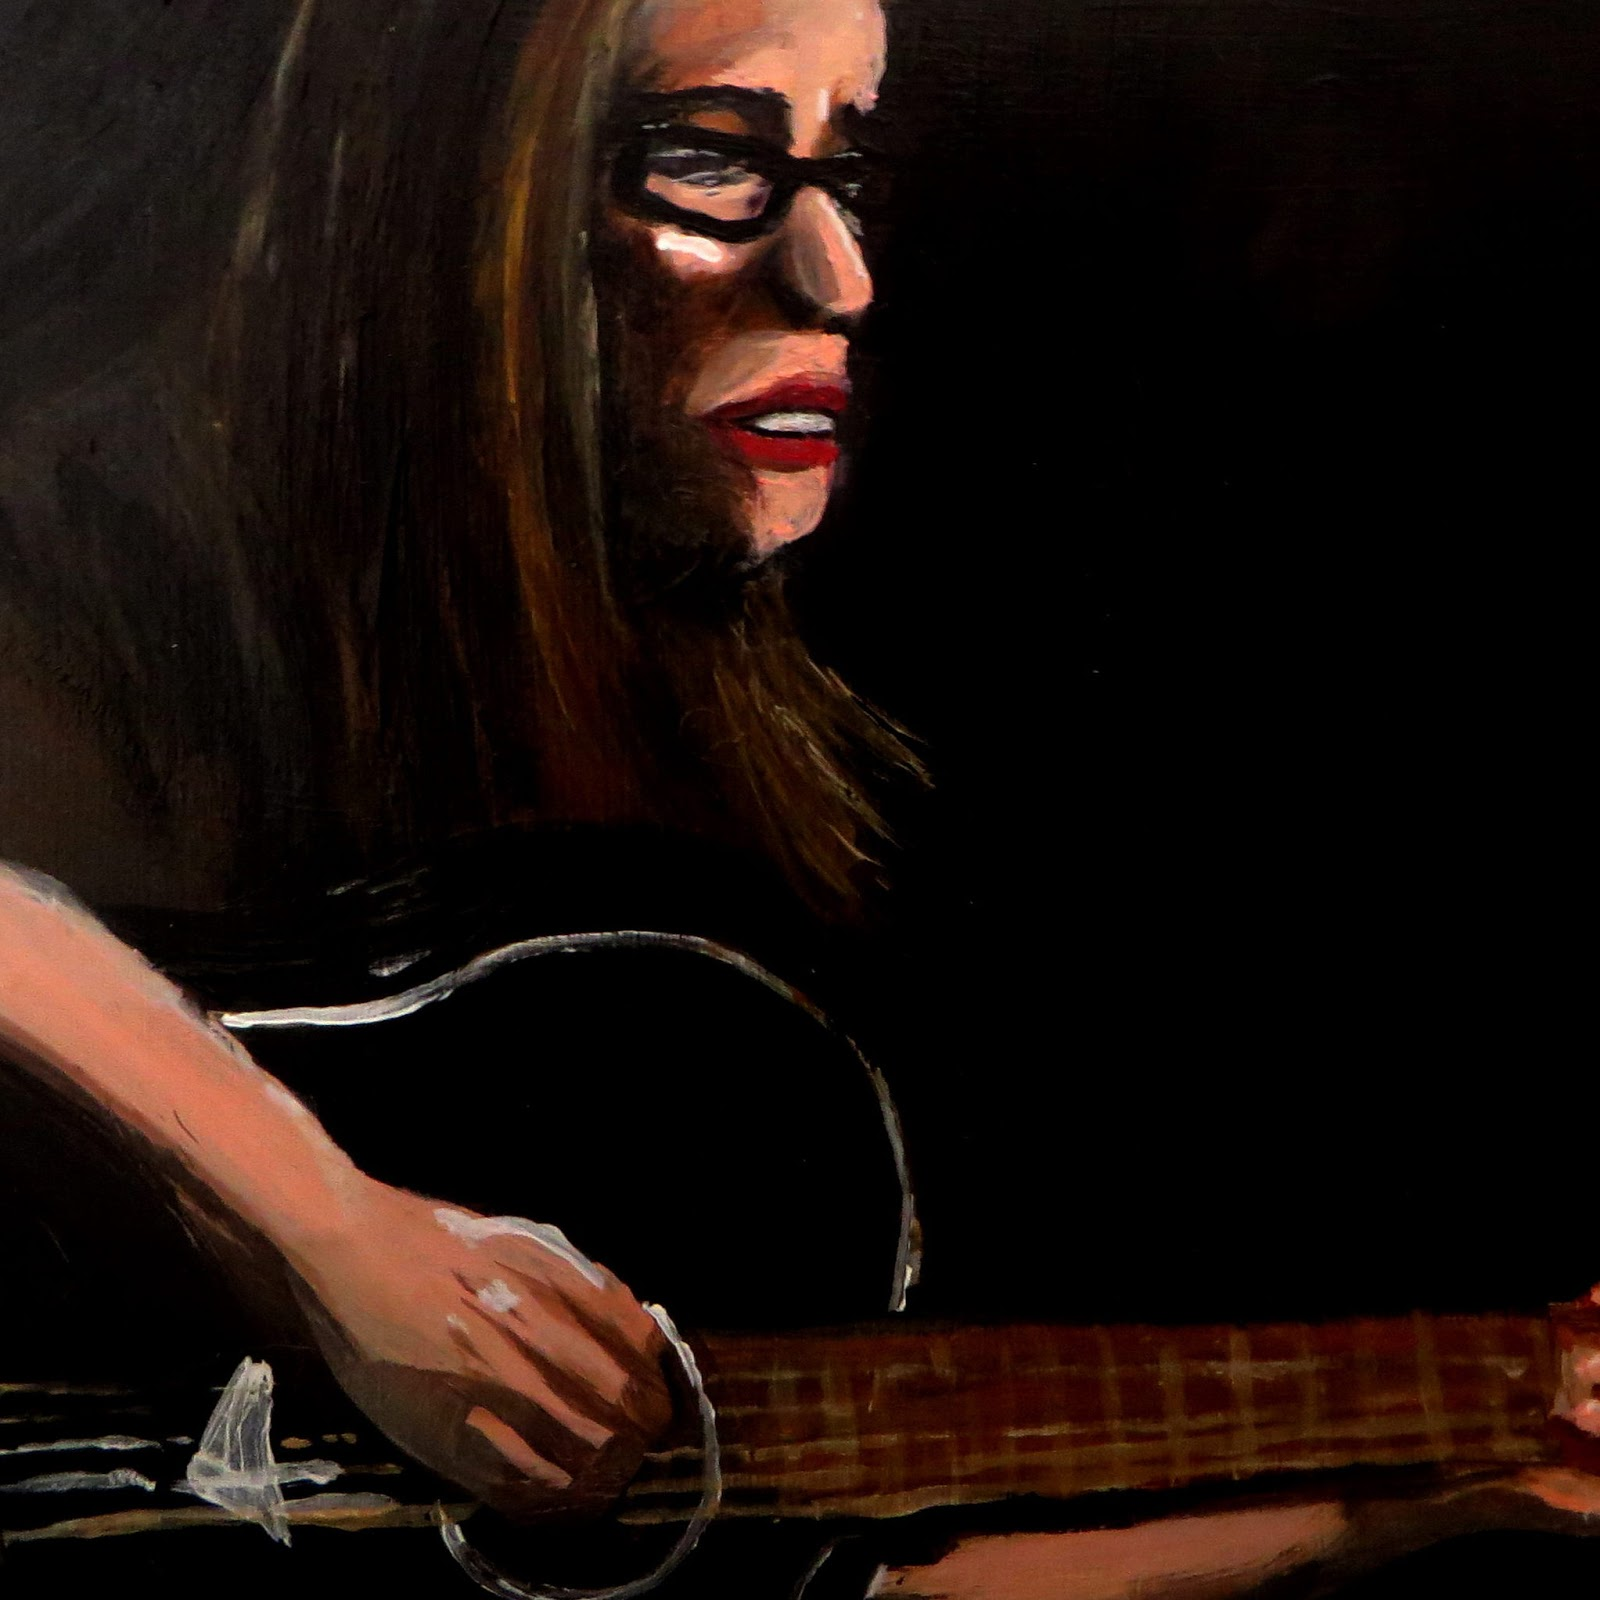 Self-Portrait with Guitar